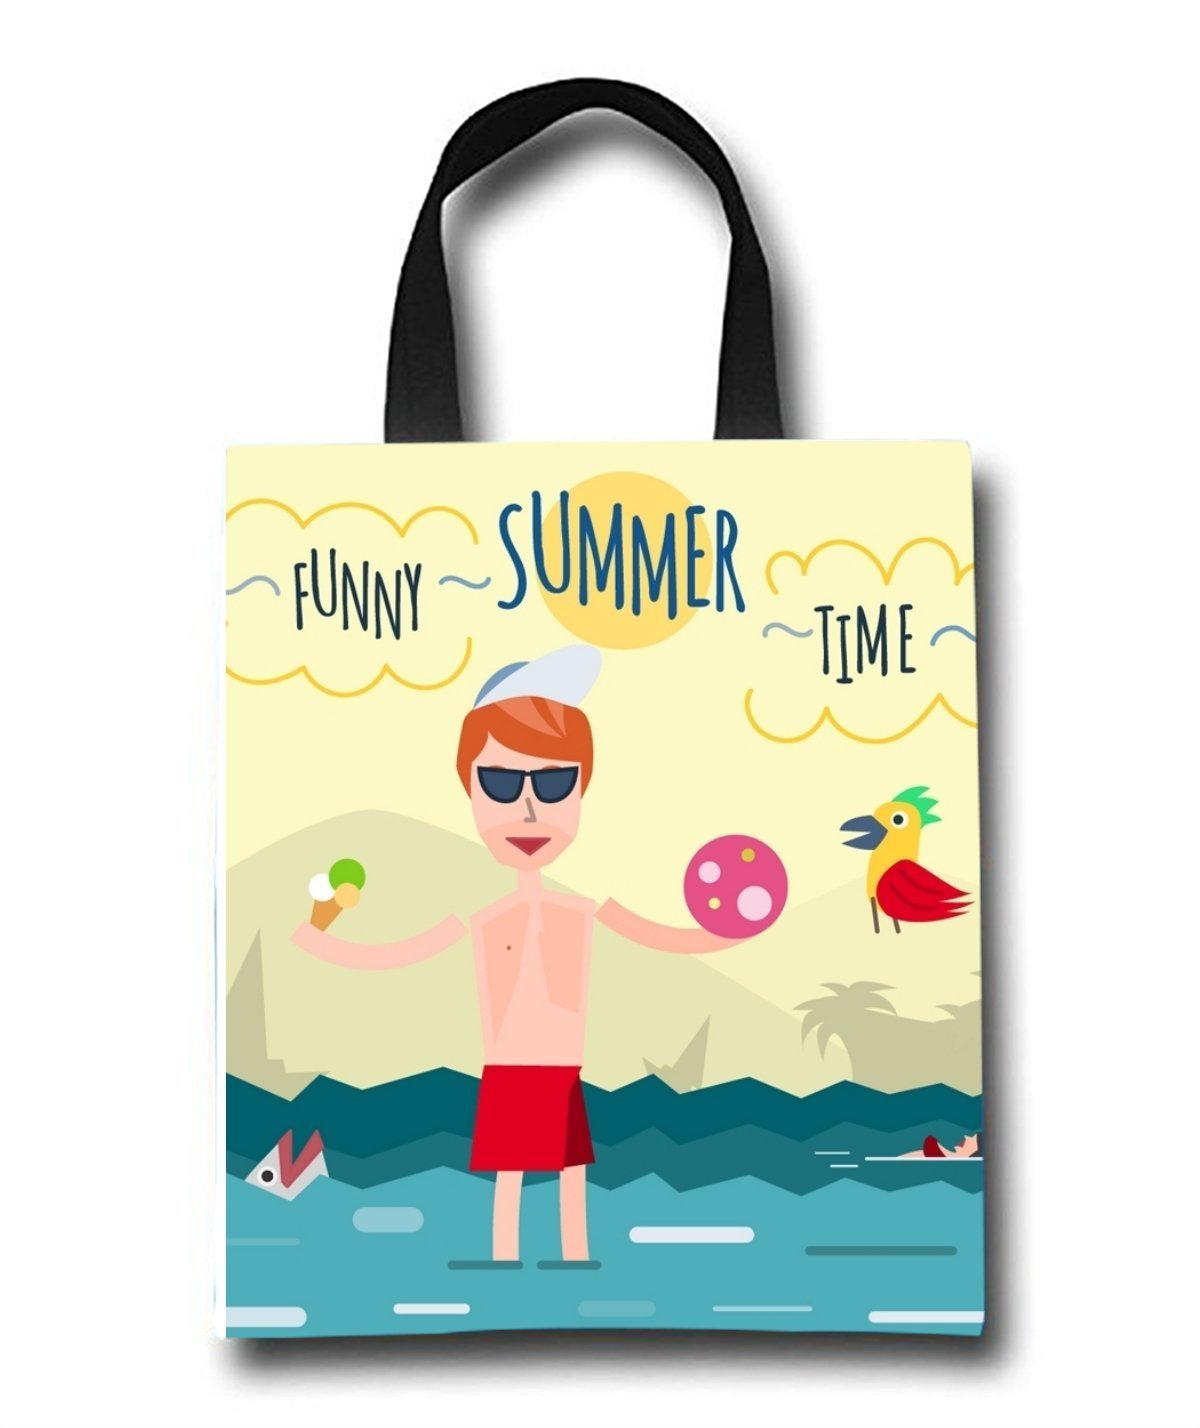 Funny Summer Time Beach Tote Bag - Toy Tote Bag - Large Lightweight Market, Grocery & Picnic